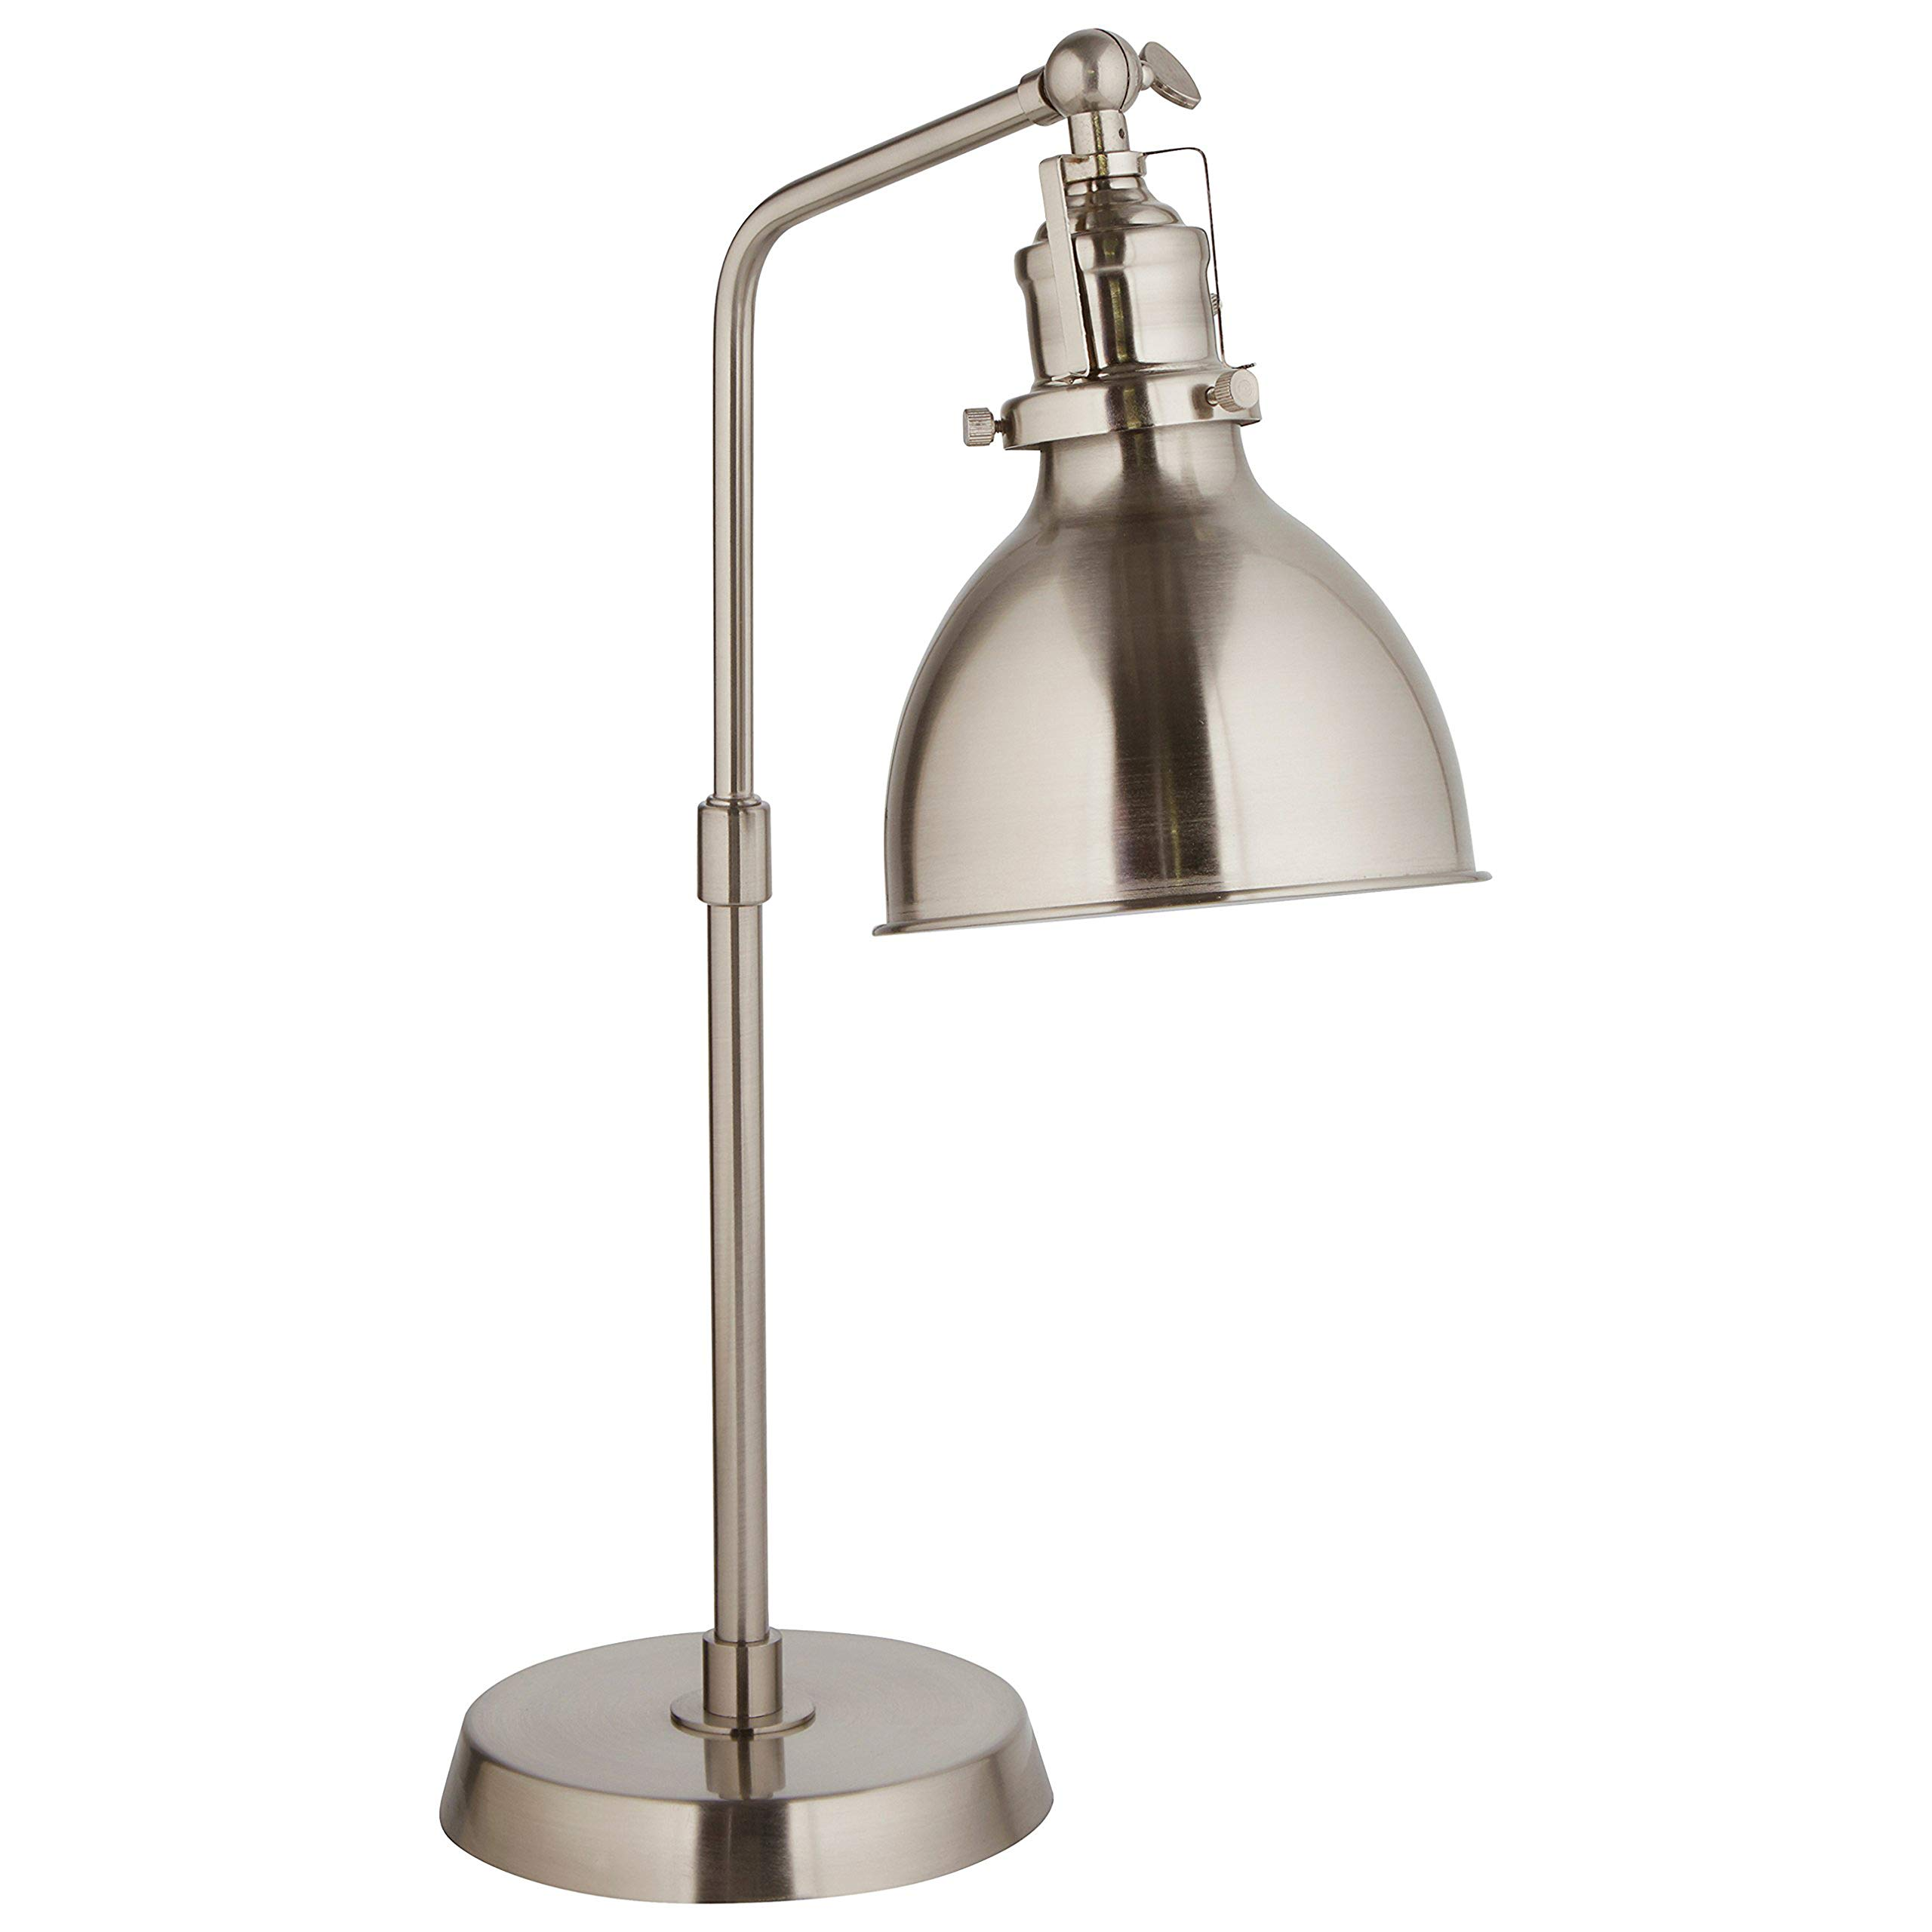 Rivet Pike Factory Industrial Table Lamp, 18''H, with Bulb, Brushed Steel